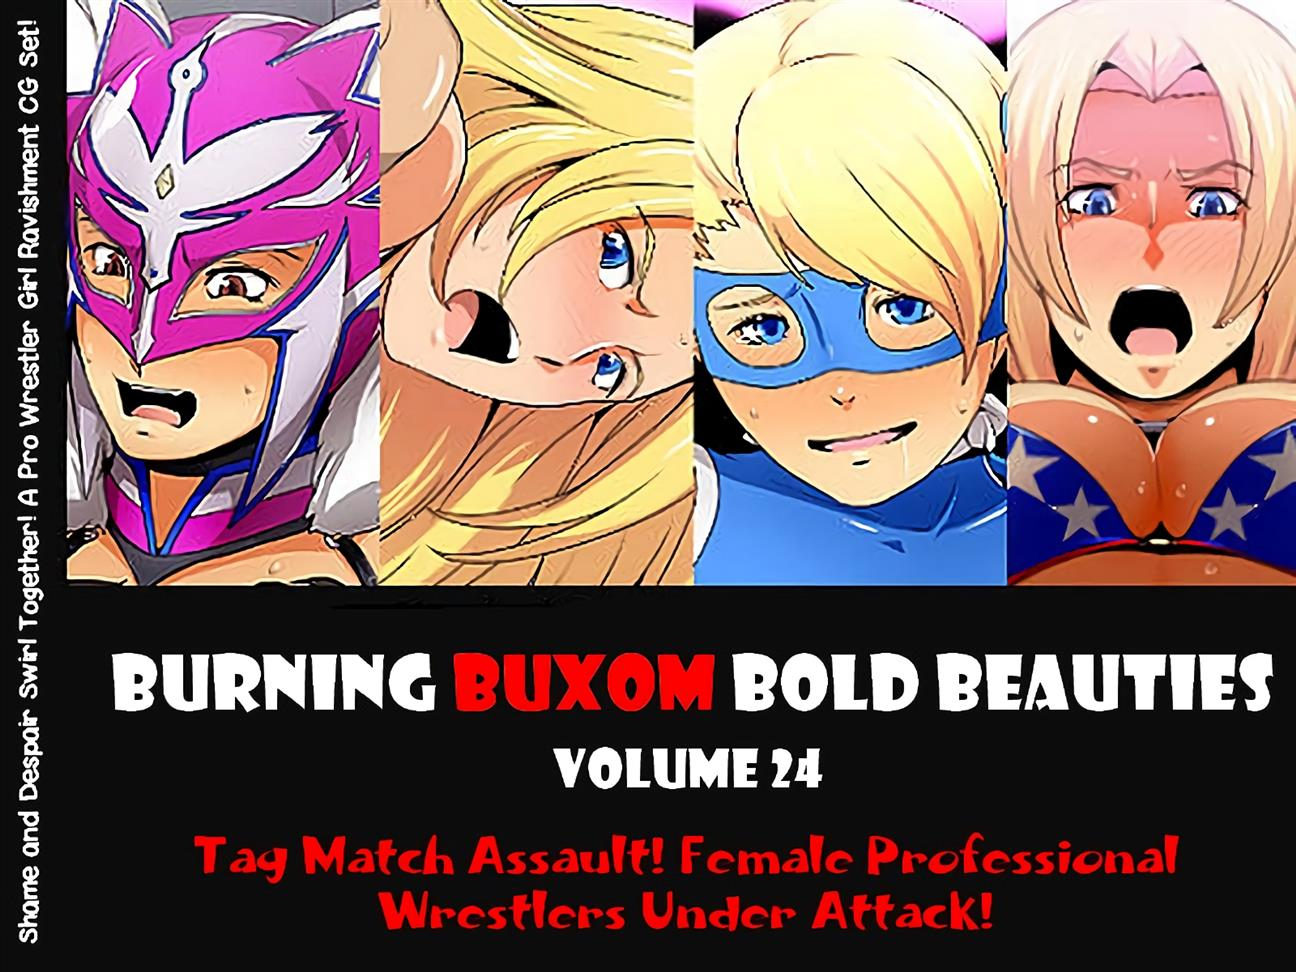 BURNING BUXOM BOLD BEAUTIES VOLUME 24 Tag Match Assault! Female Professionals Wrestlers Under Attack! - Foto 1